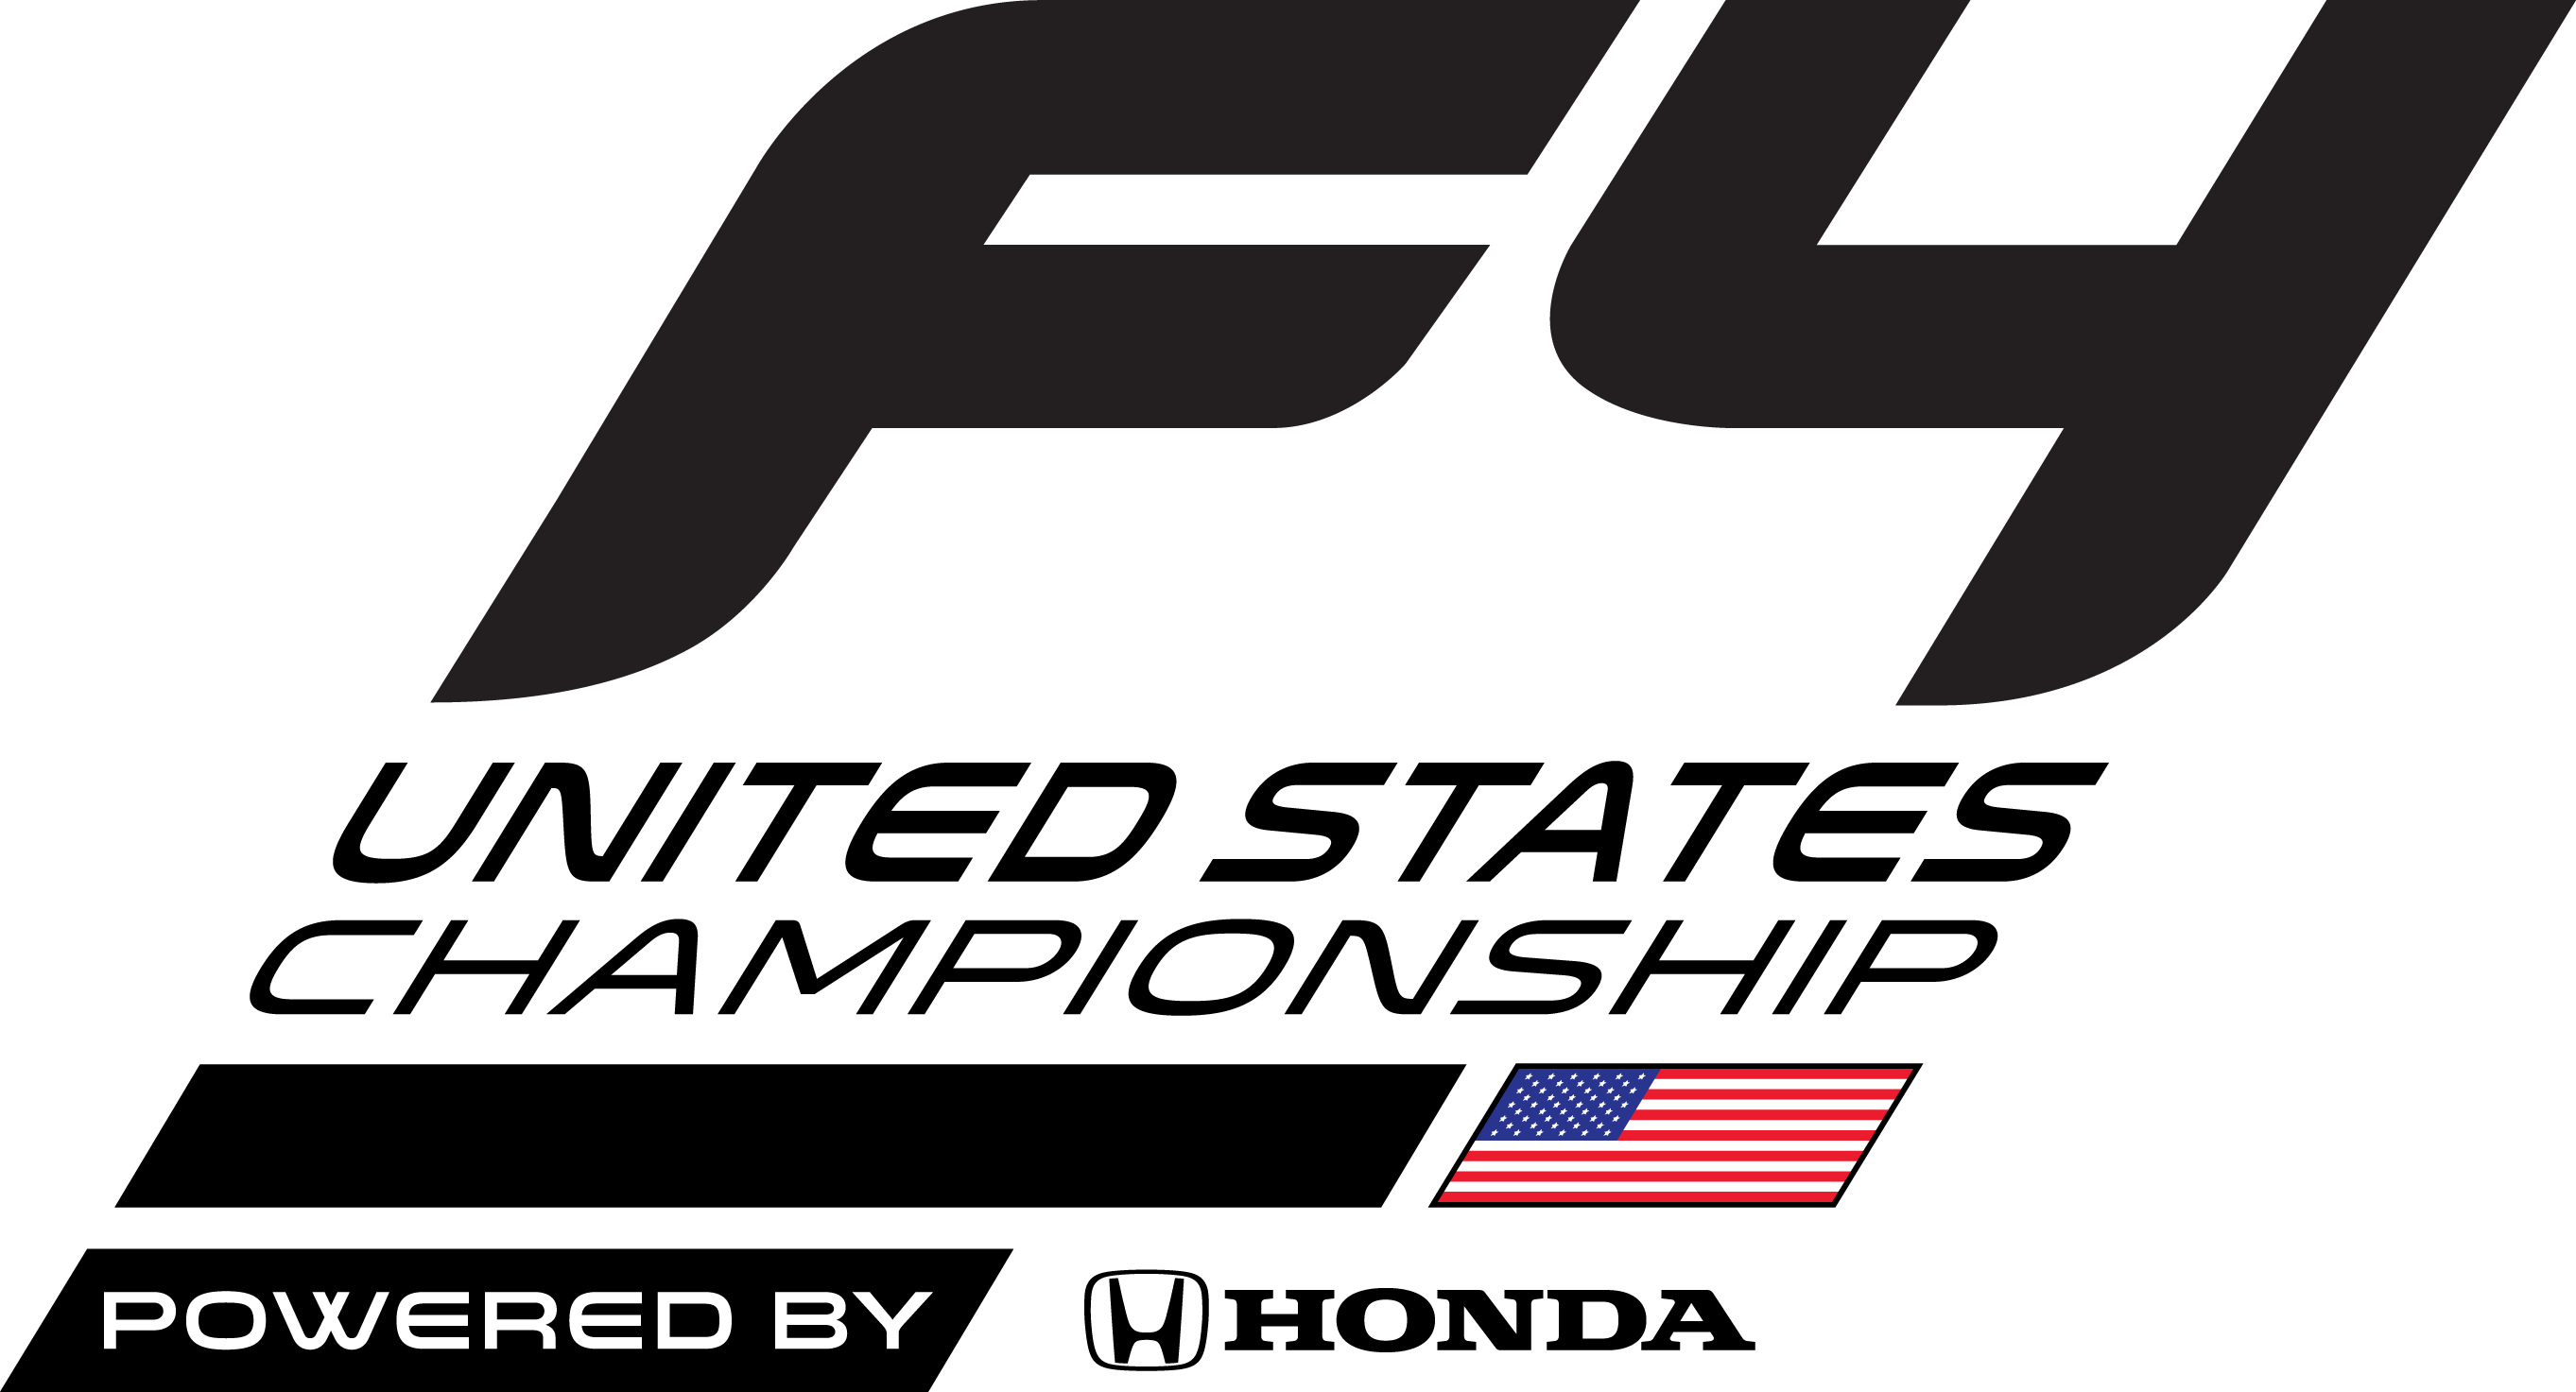 f4-primary-logo.png